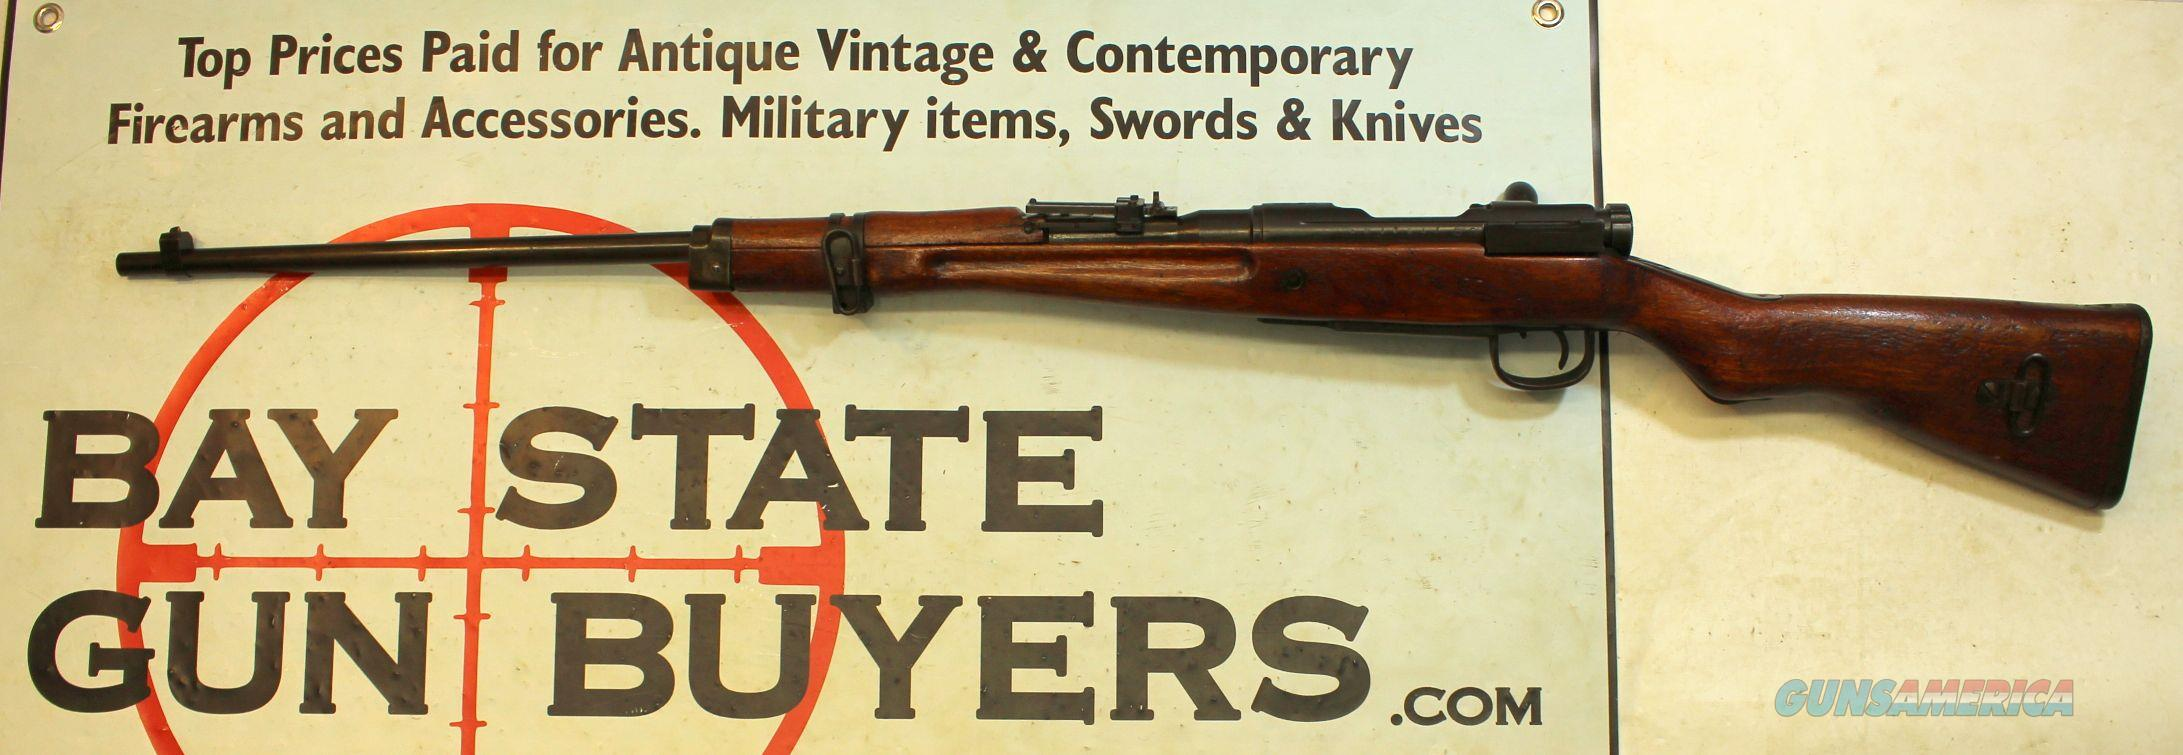 Japanese ARISAKA Type 99 bolt action rifle 7.7mm SPORTERIZED - EXCELLENT SHOOTER!  Guns > Rifles > Military Misc. Rifles Non-US > Other